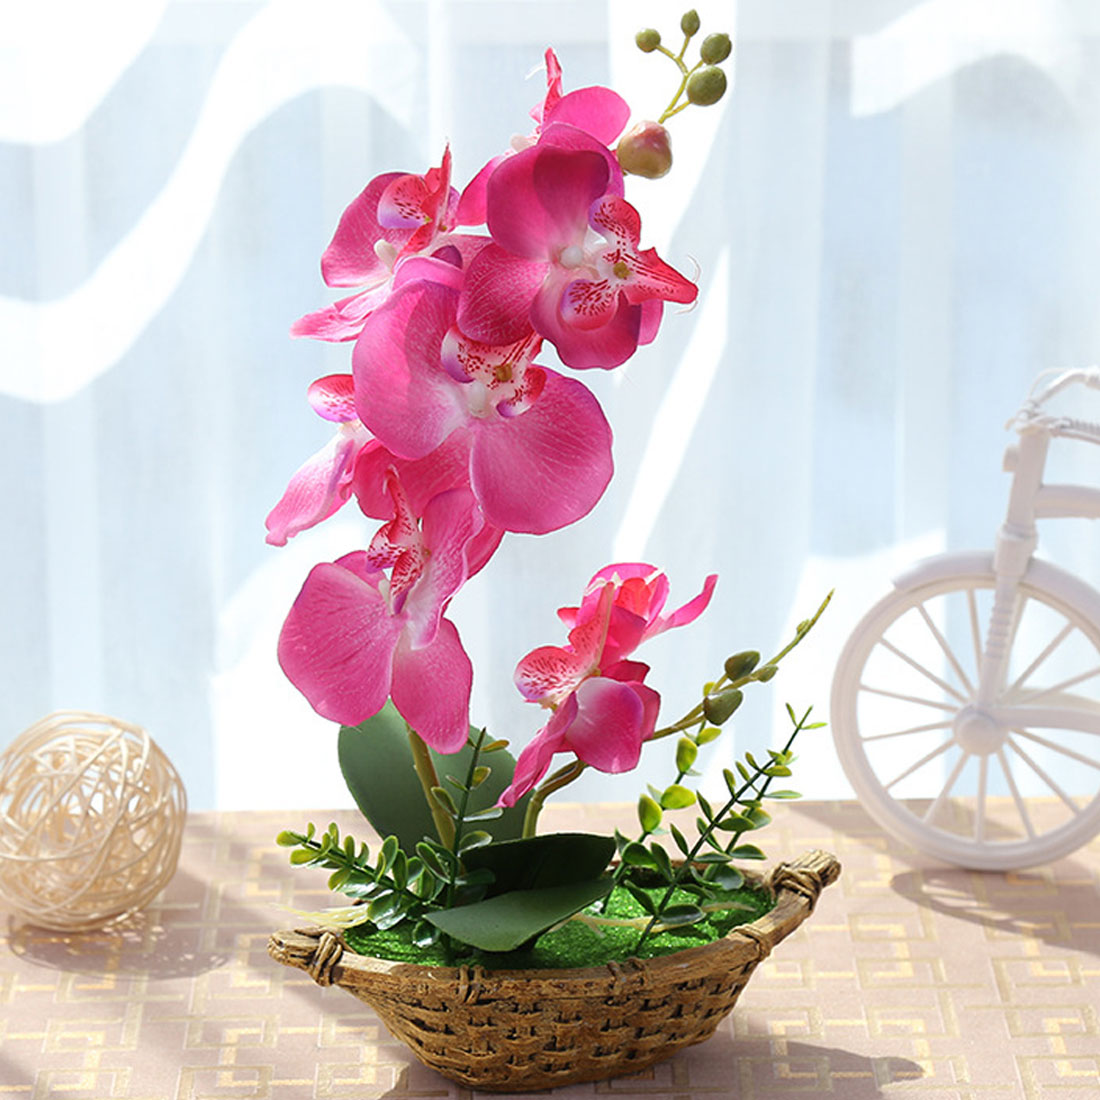 2018 Party supplies Artificial flower + Vase Butterfly Orchid Flower Real Touch leaves Artificial Plants Overall Floral